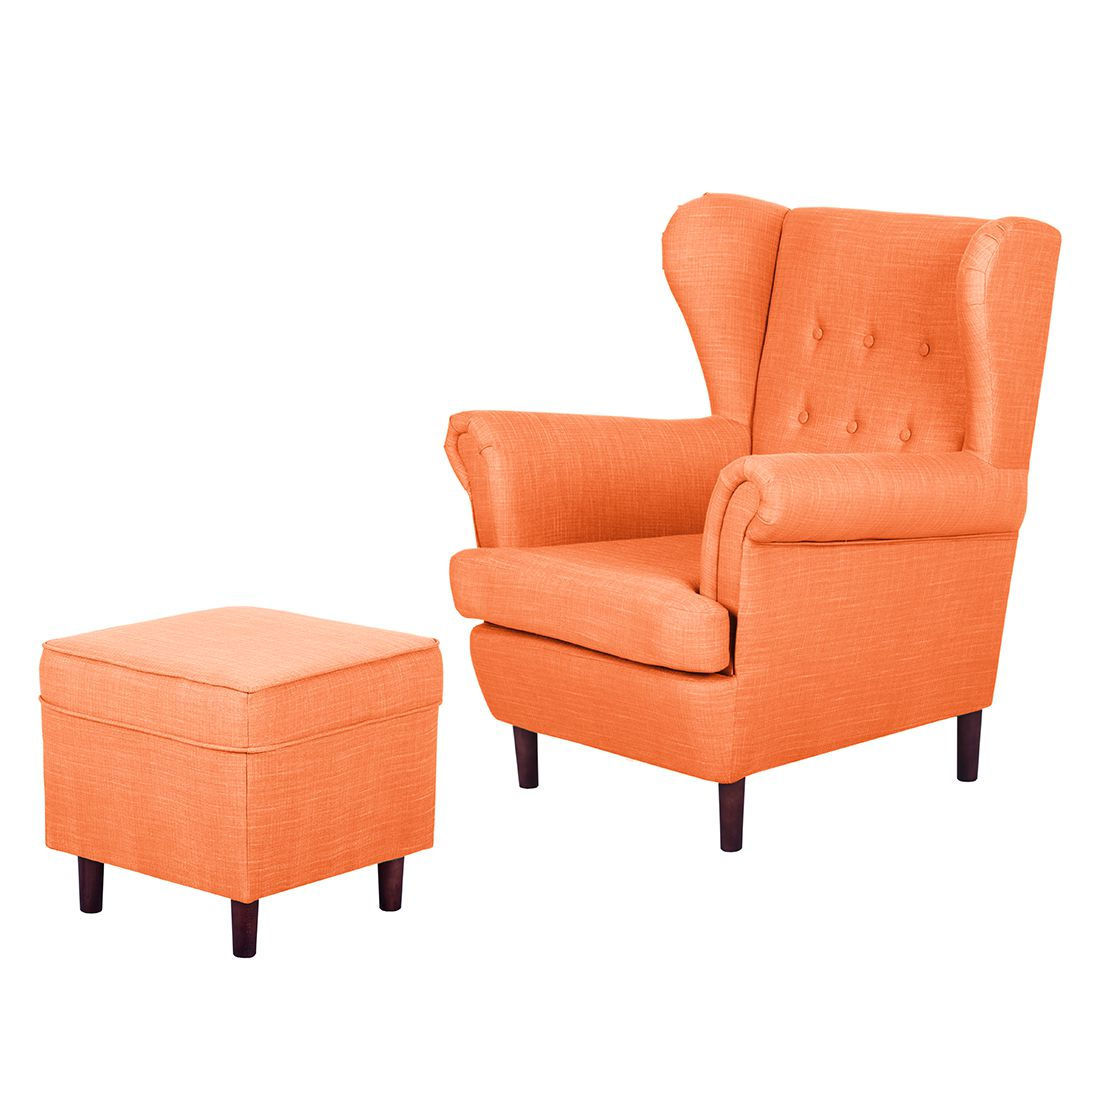 Ohrensessel Kaiapoi (mit Hocker) Webstoff - Orange, Jack and Alice